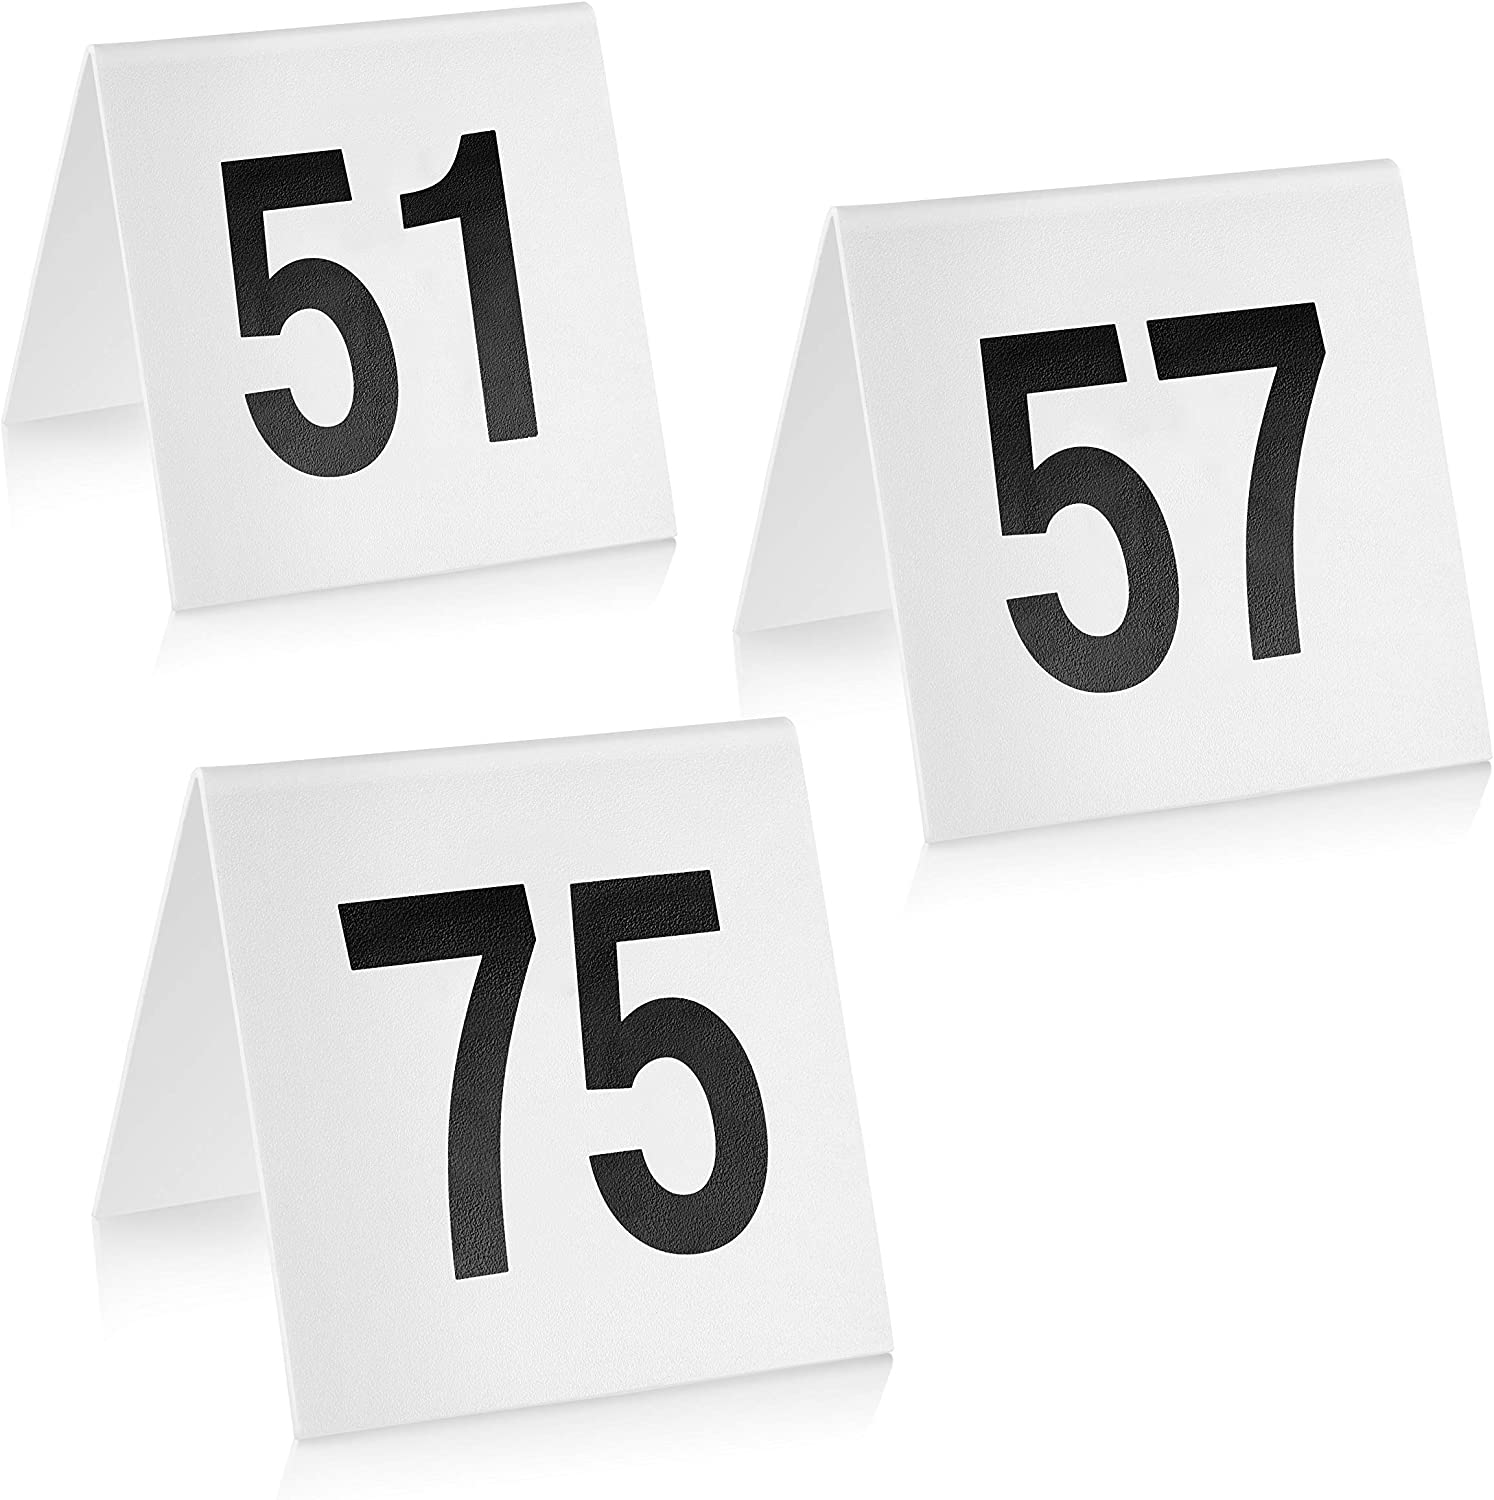 New Star Foodservice 27570 Double Side Plastic Table Numbers, 51-75, 3